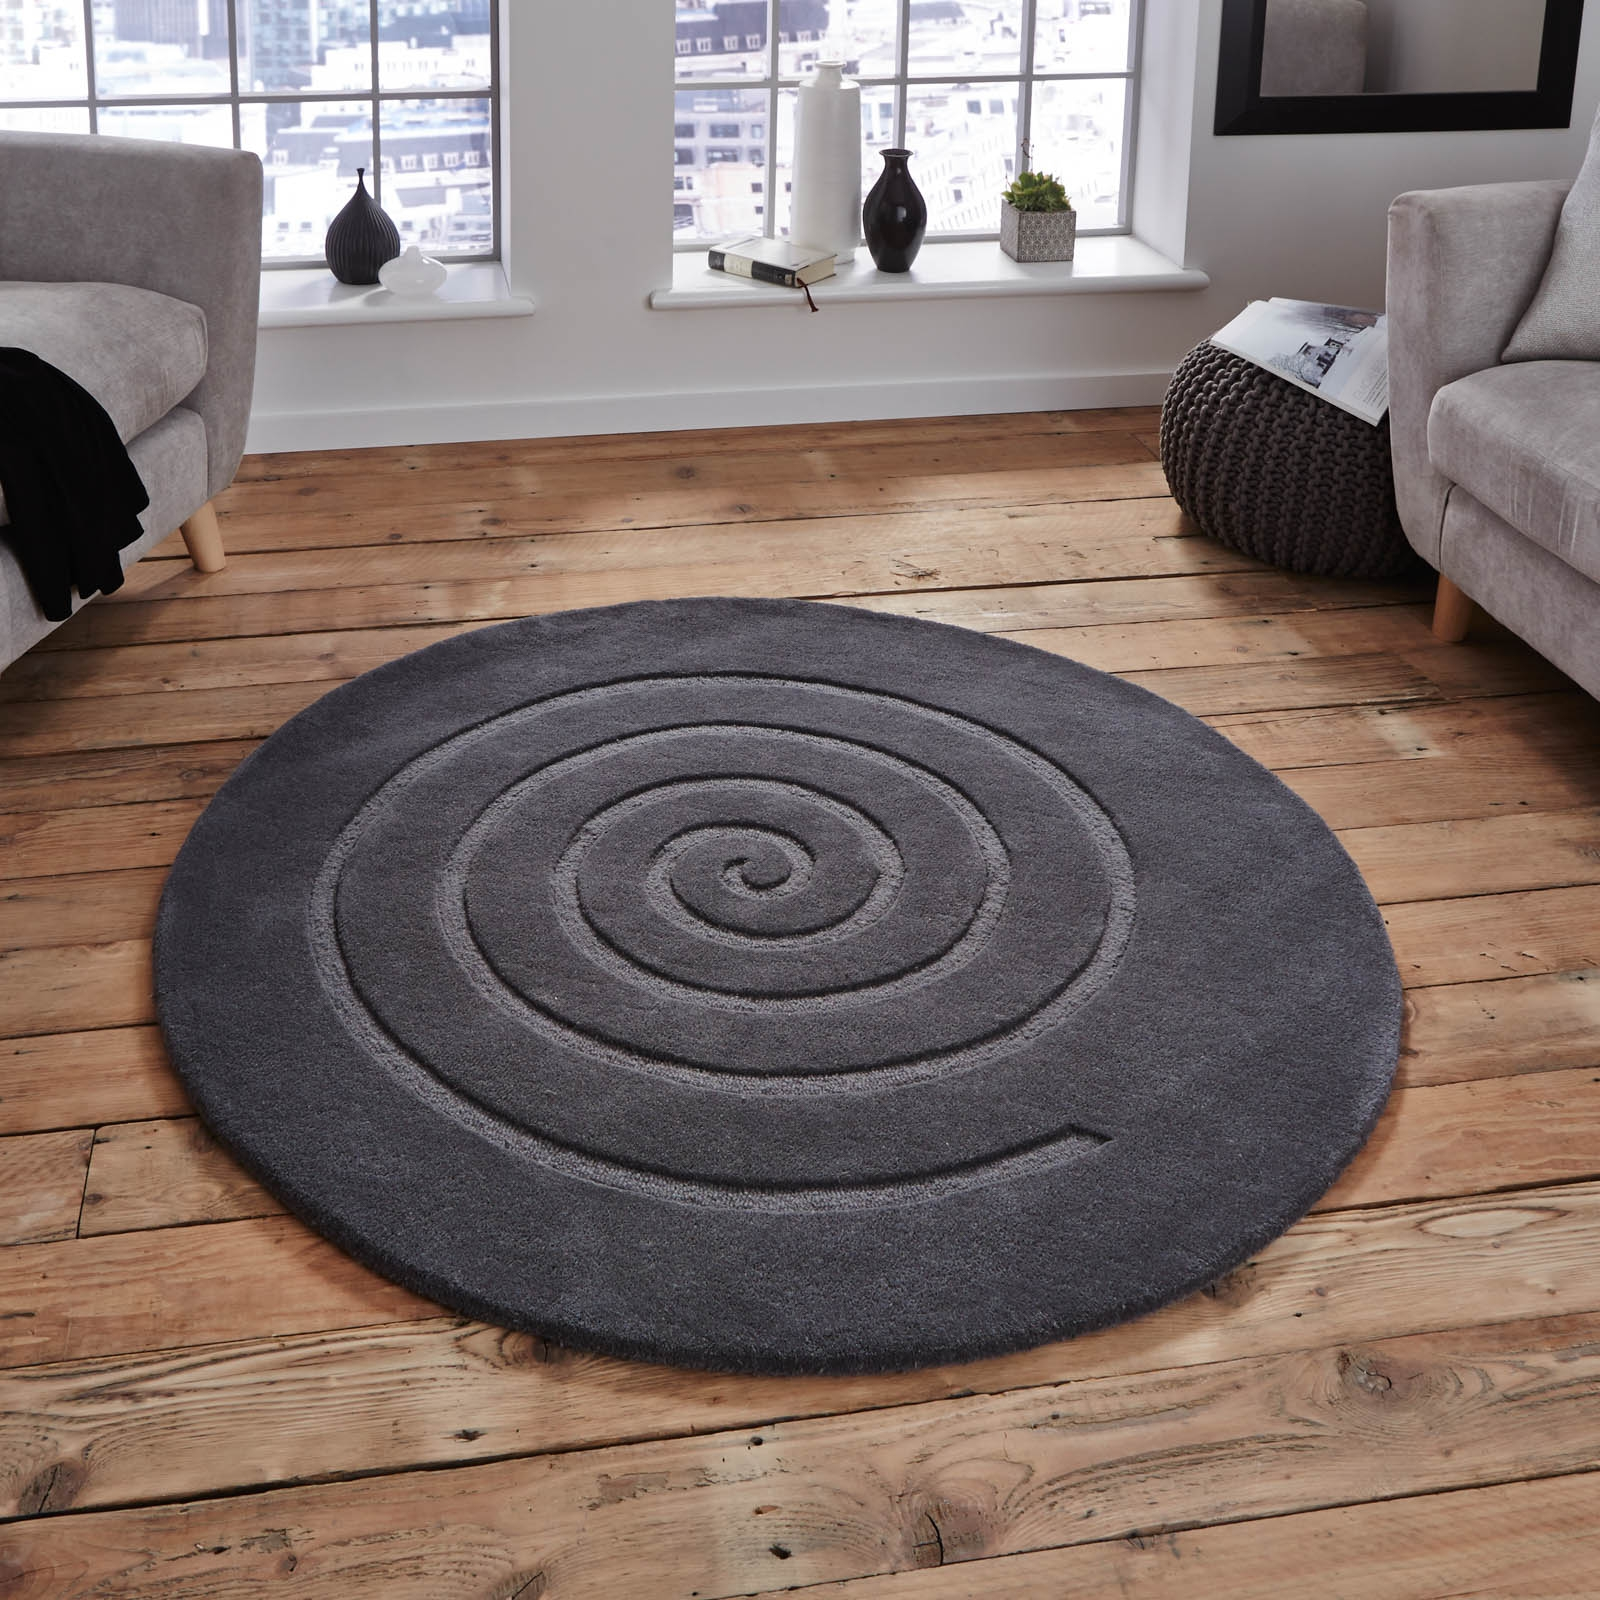 Spiral Circular Wool Rugs In Grey Wool Spirals And The Ojays Throughout Circular Wool Rugs (Image 14 of 15)